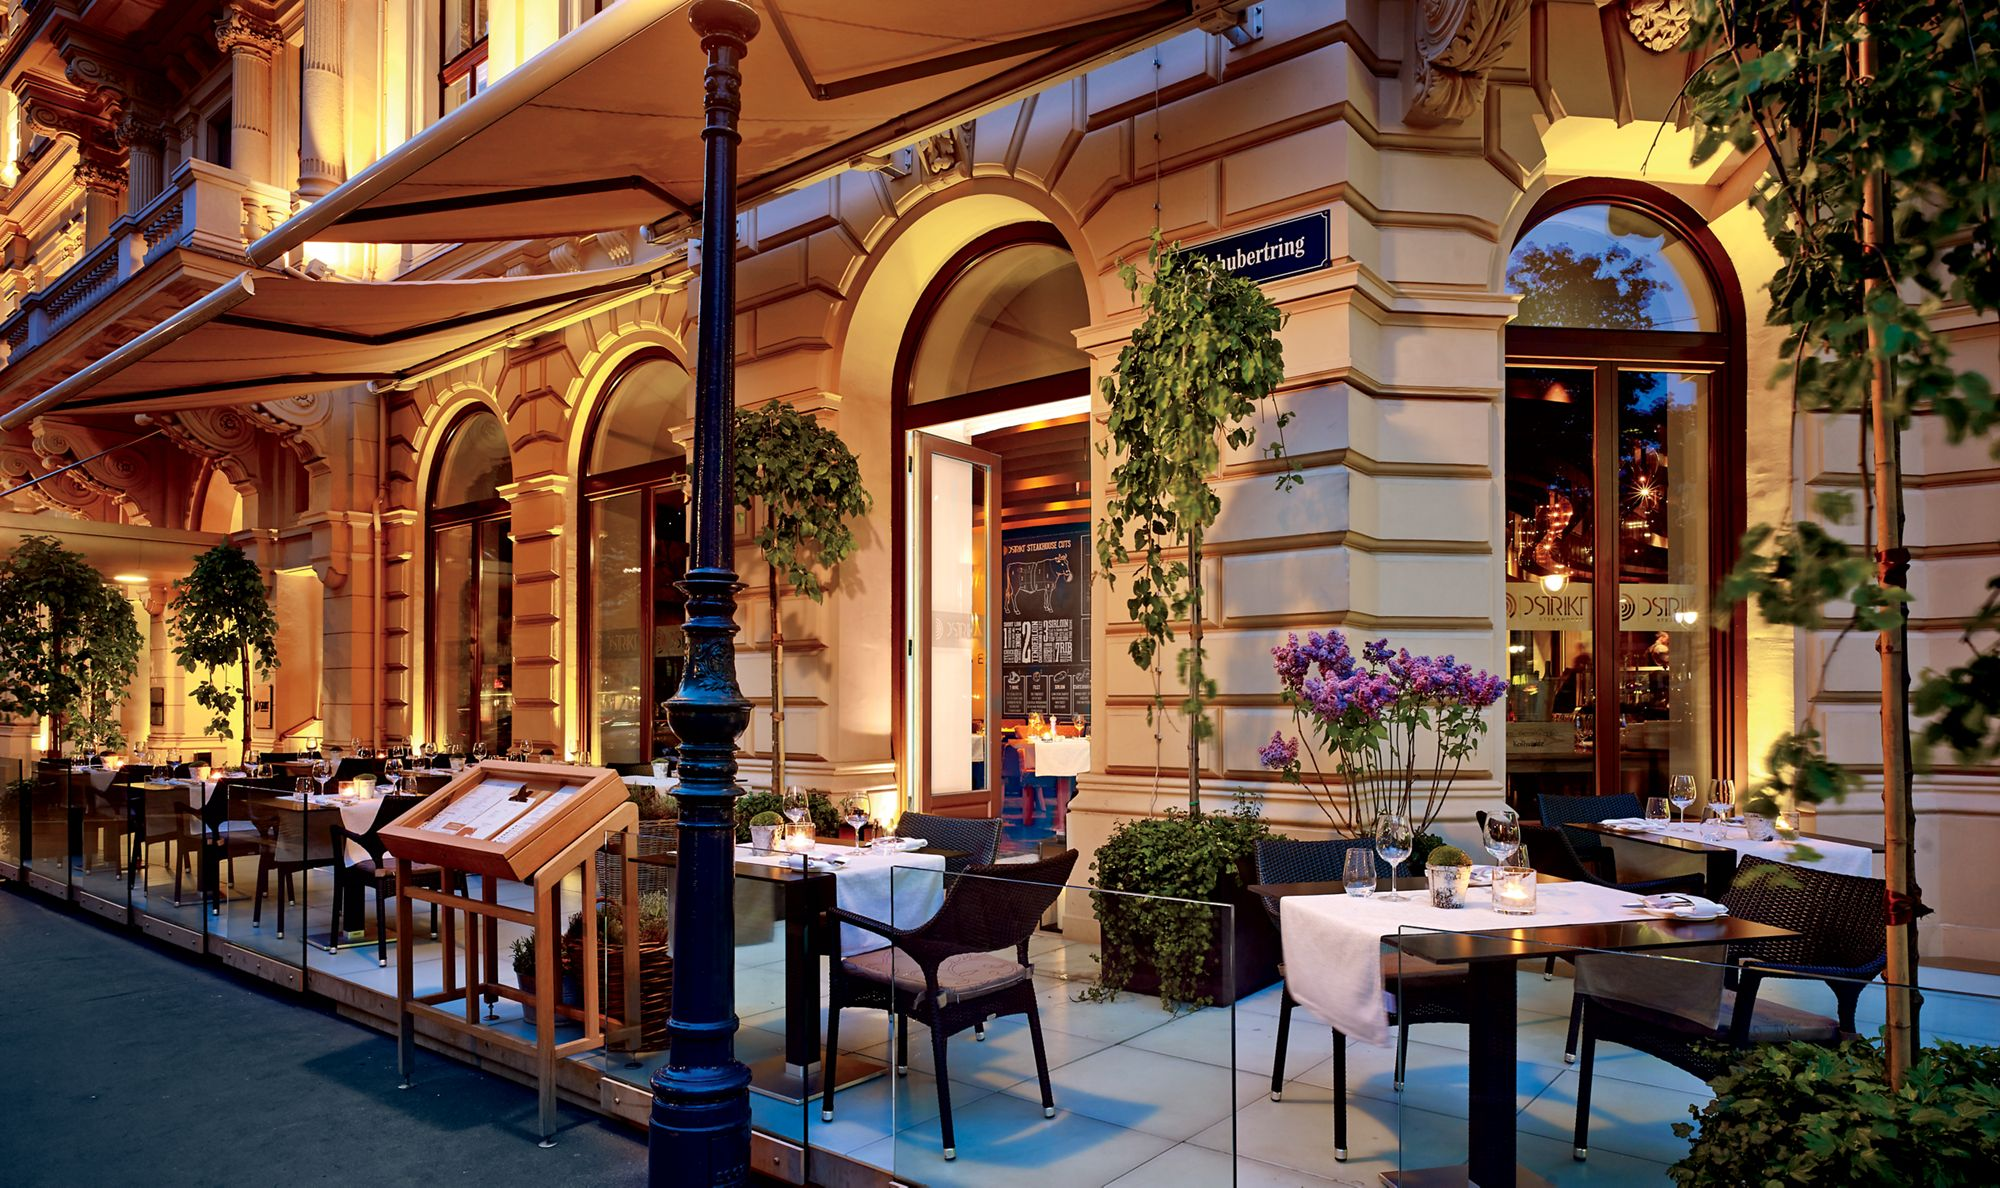 Patio seating wraps around the corner of the building and features potted plants and tables at the Ritz-Carlton in Vienna, Austria.